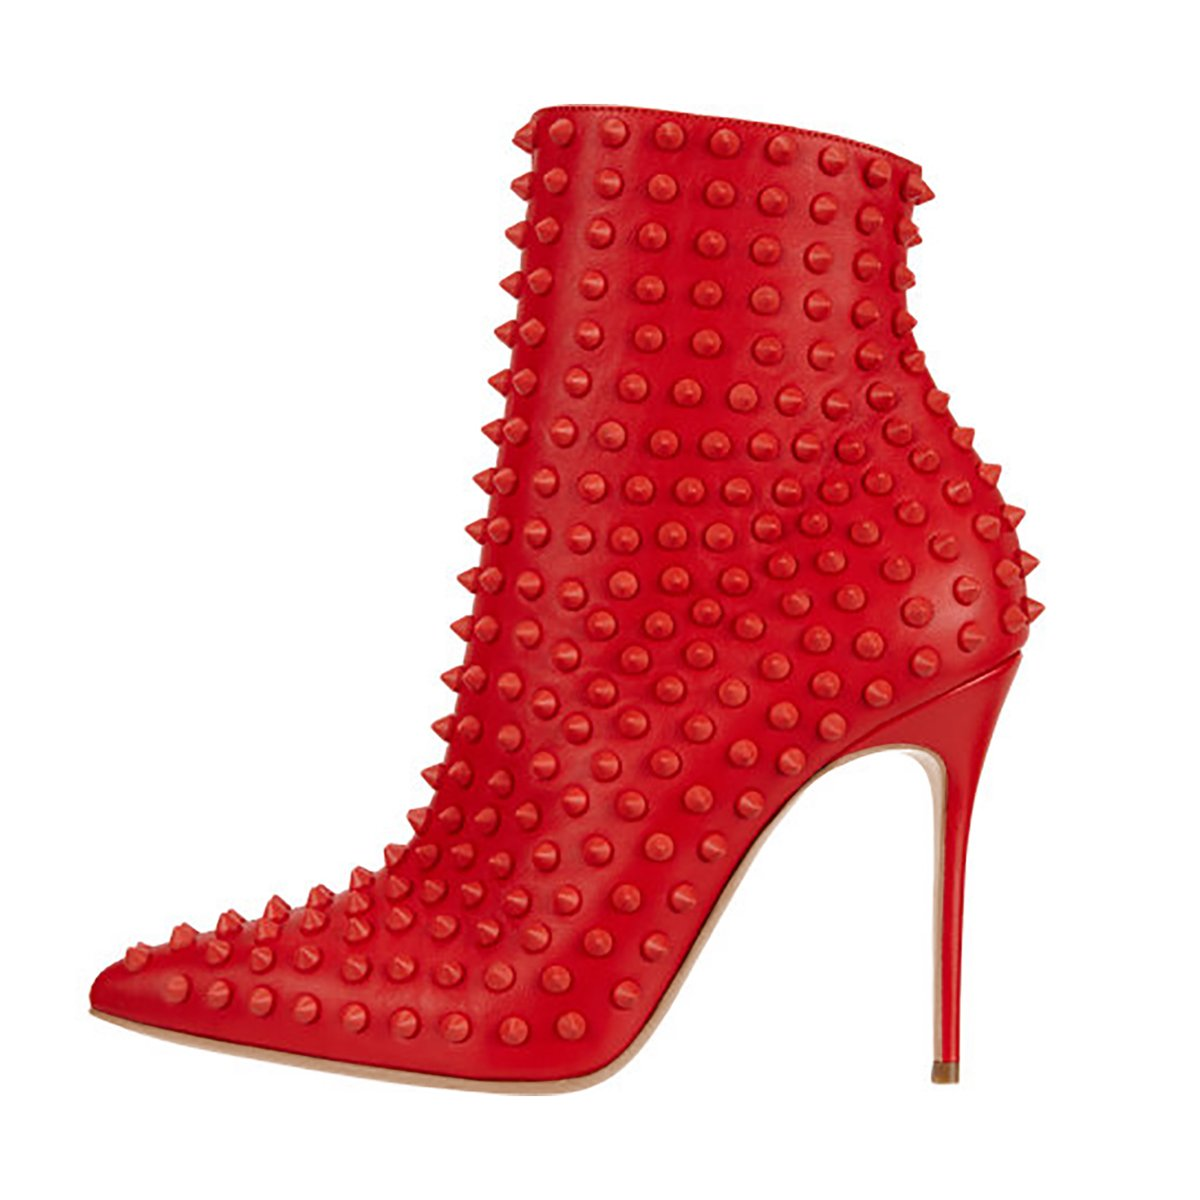 FSJ Women Fashion High Heel Ankle Boots with Rivets Pointed Toe Stilettos Zipper Shoes Size 4-15 US B0755CZ2HQ 13 B(M) US|Red